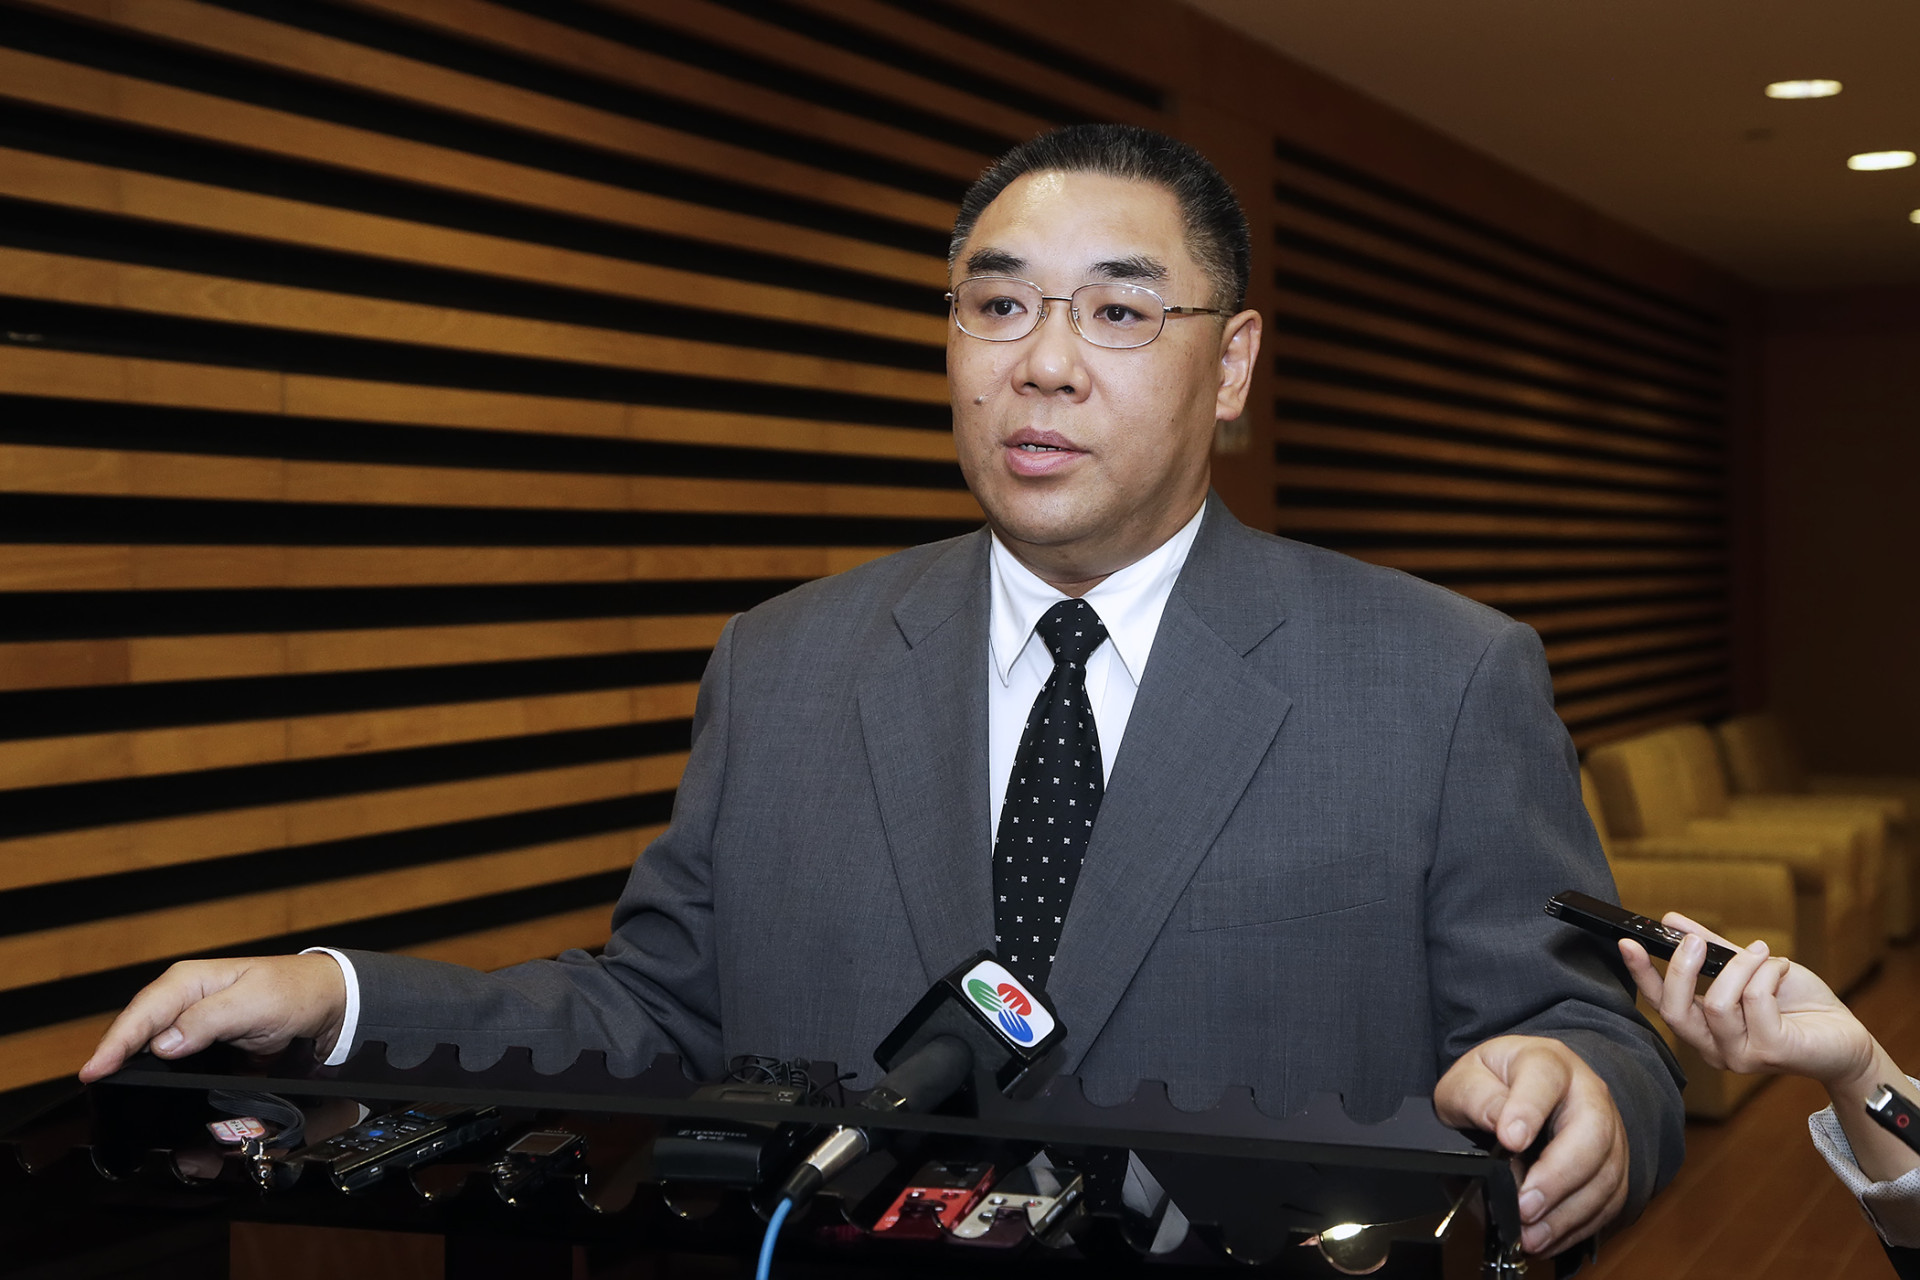 Macau's Chief Executive to attend Pan-Pearl River Delta Forum